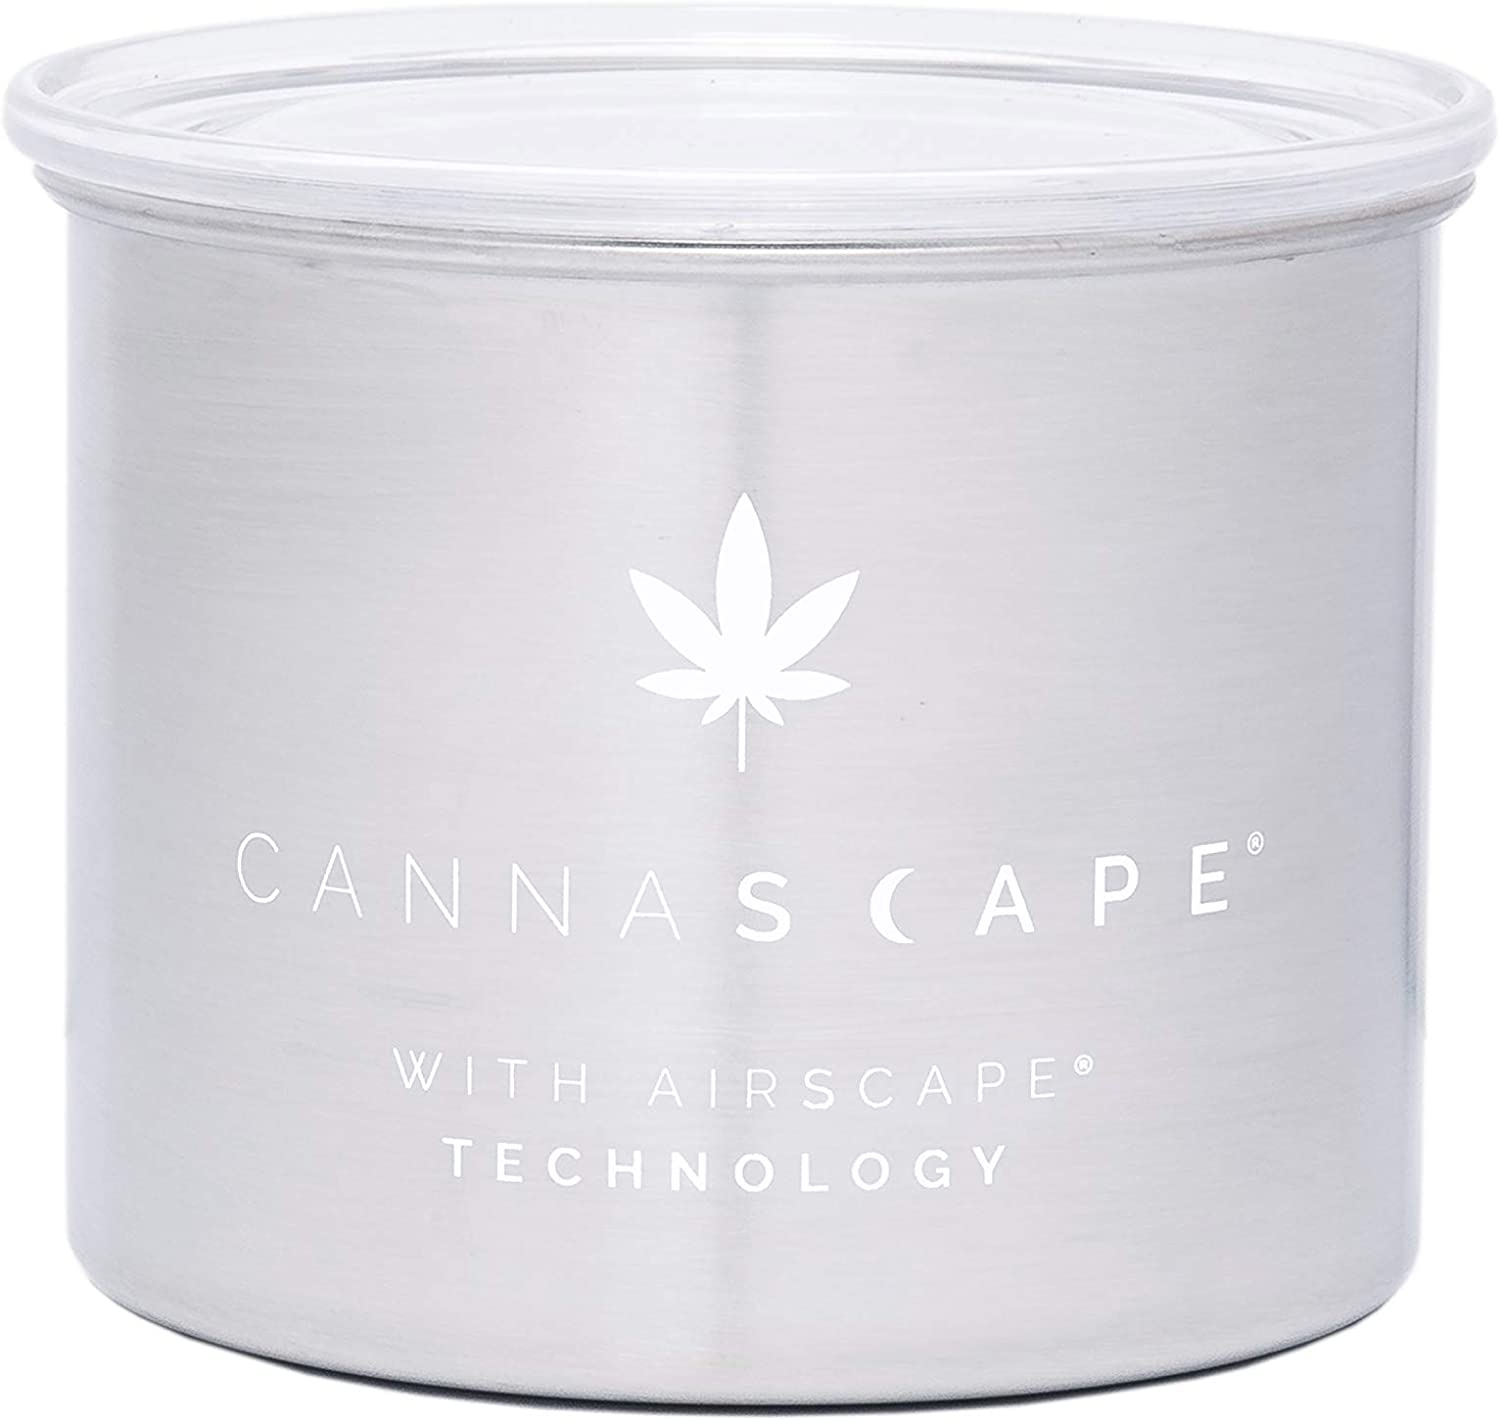 Planetary Design Cannascape Stainless Steel Herb Stash Storage Container. Airtight, preserves freshness of fresh flower or buds. Holds up to 1oz or more.